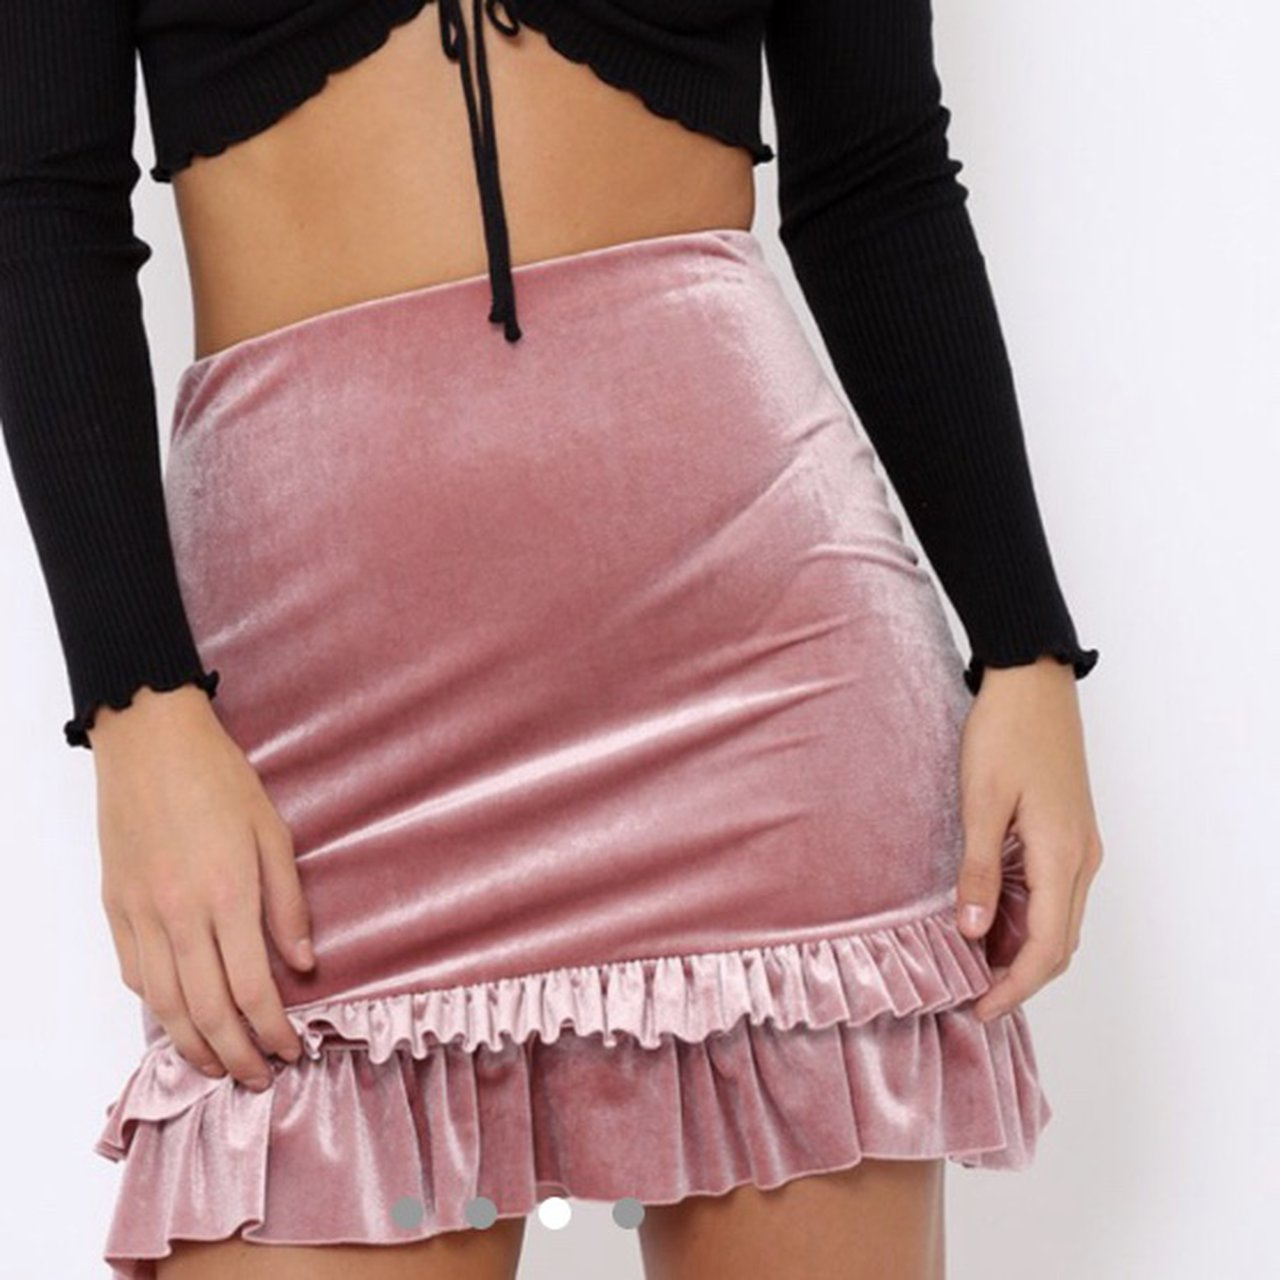 6c2e46bef9 Pink velvet skirt size 8. Never worn. Perfect condition. - Depop